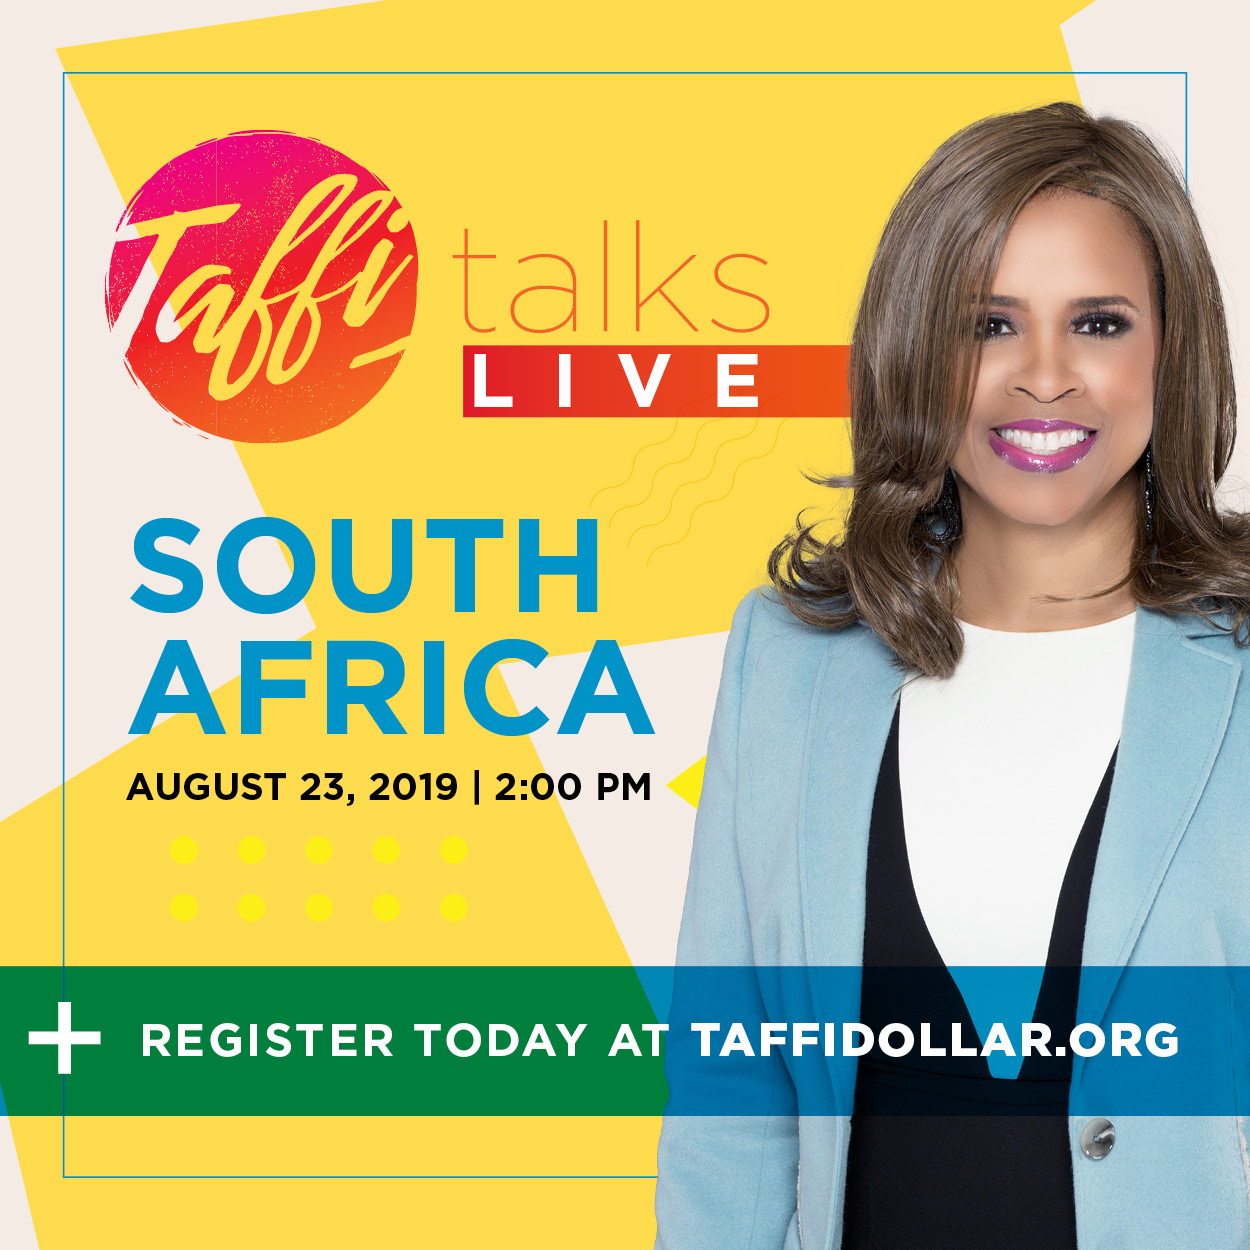 Taffi Talks South Africa